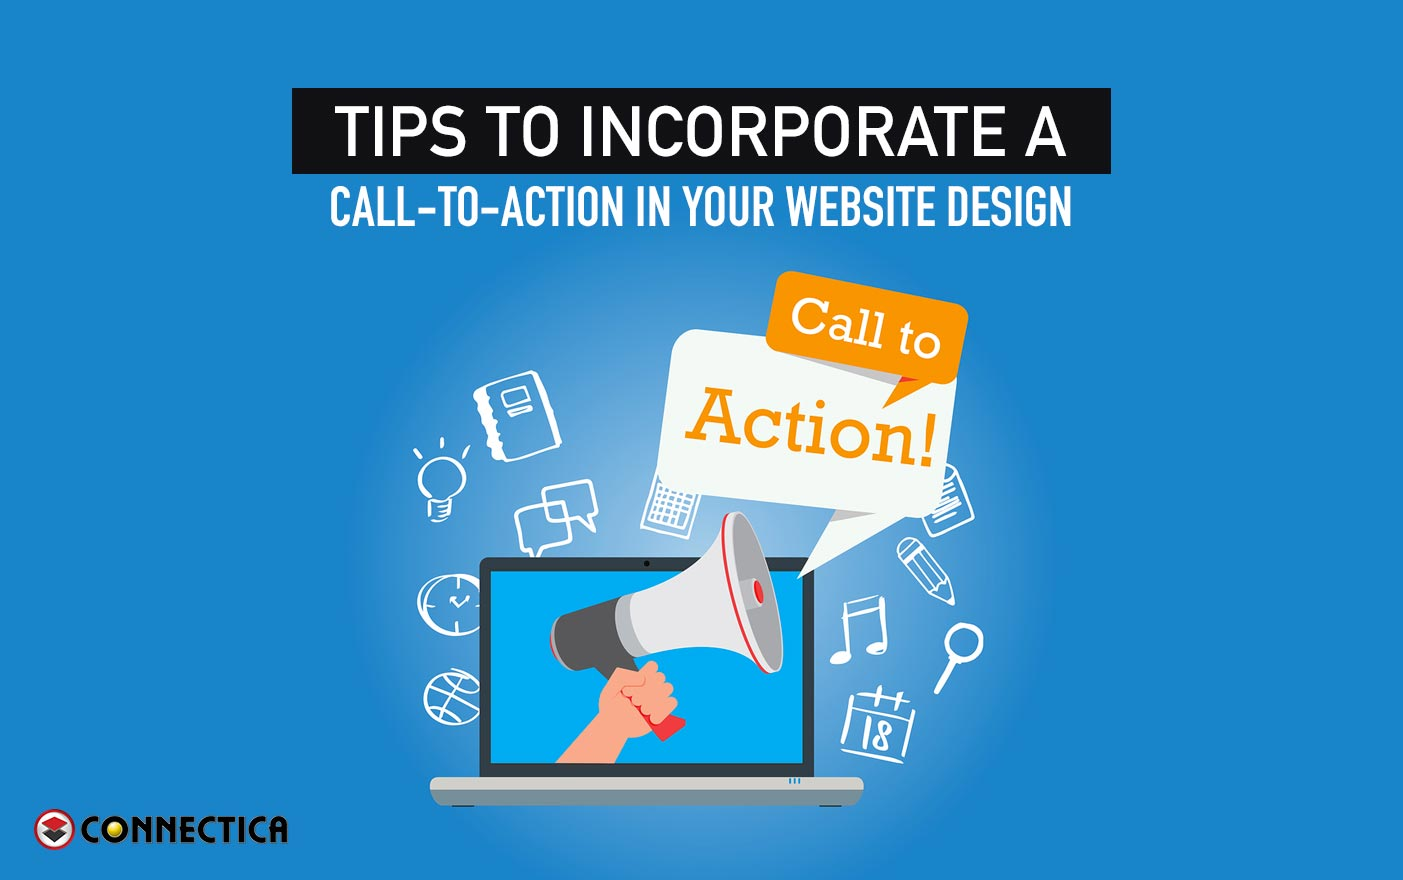 Tips To Incorporate A Call-To-Action In Your Website Design